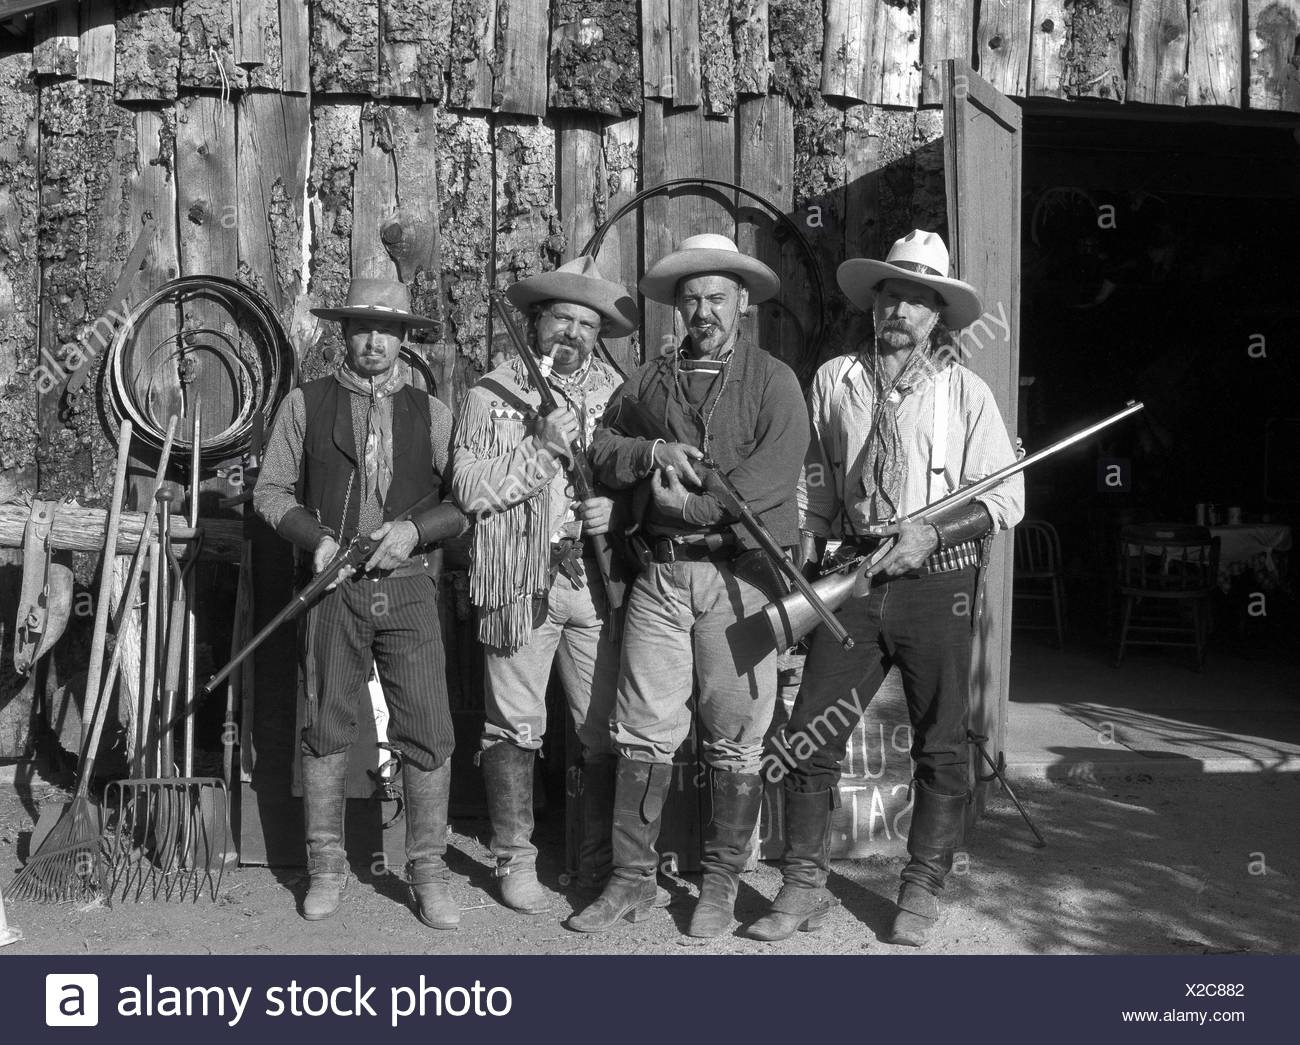 Cowboys with guns - Stock Image